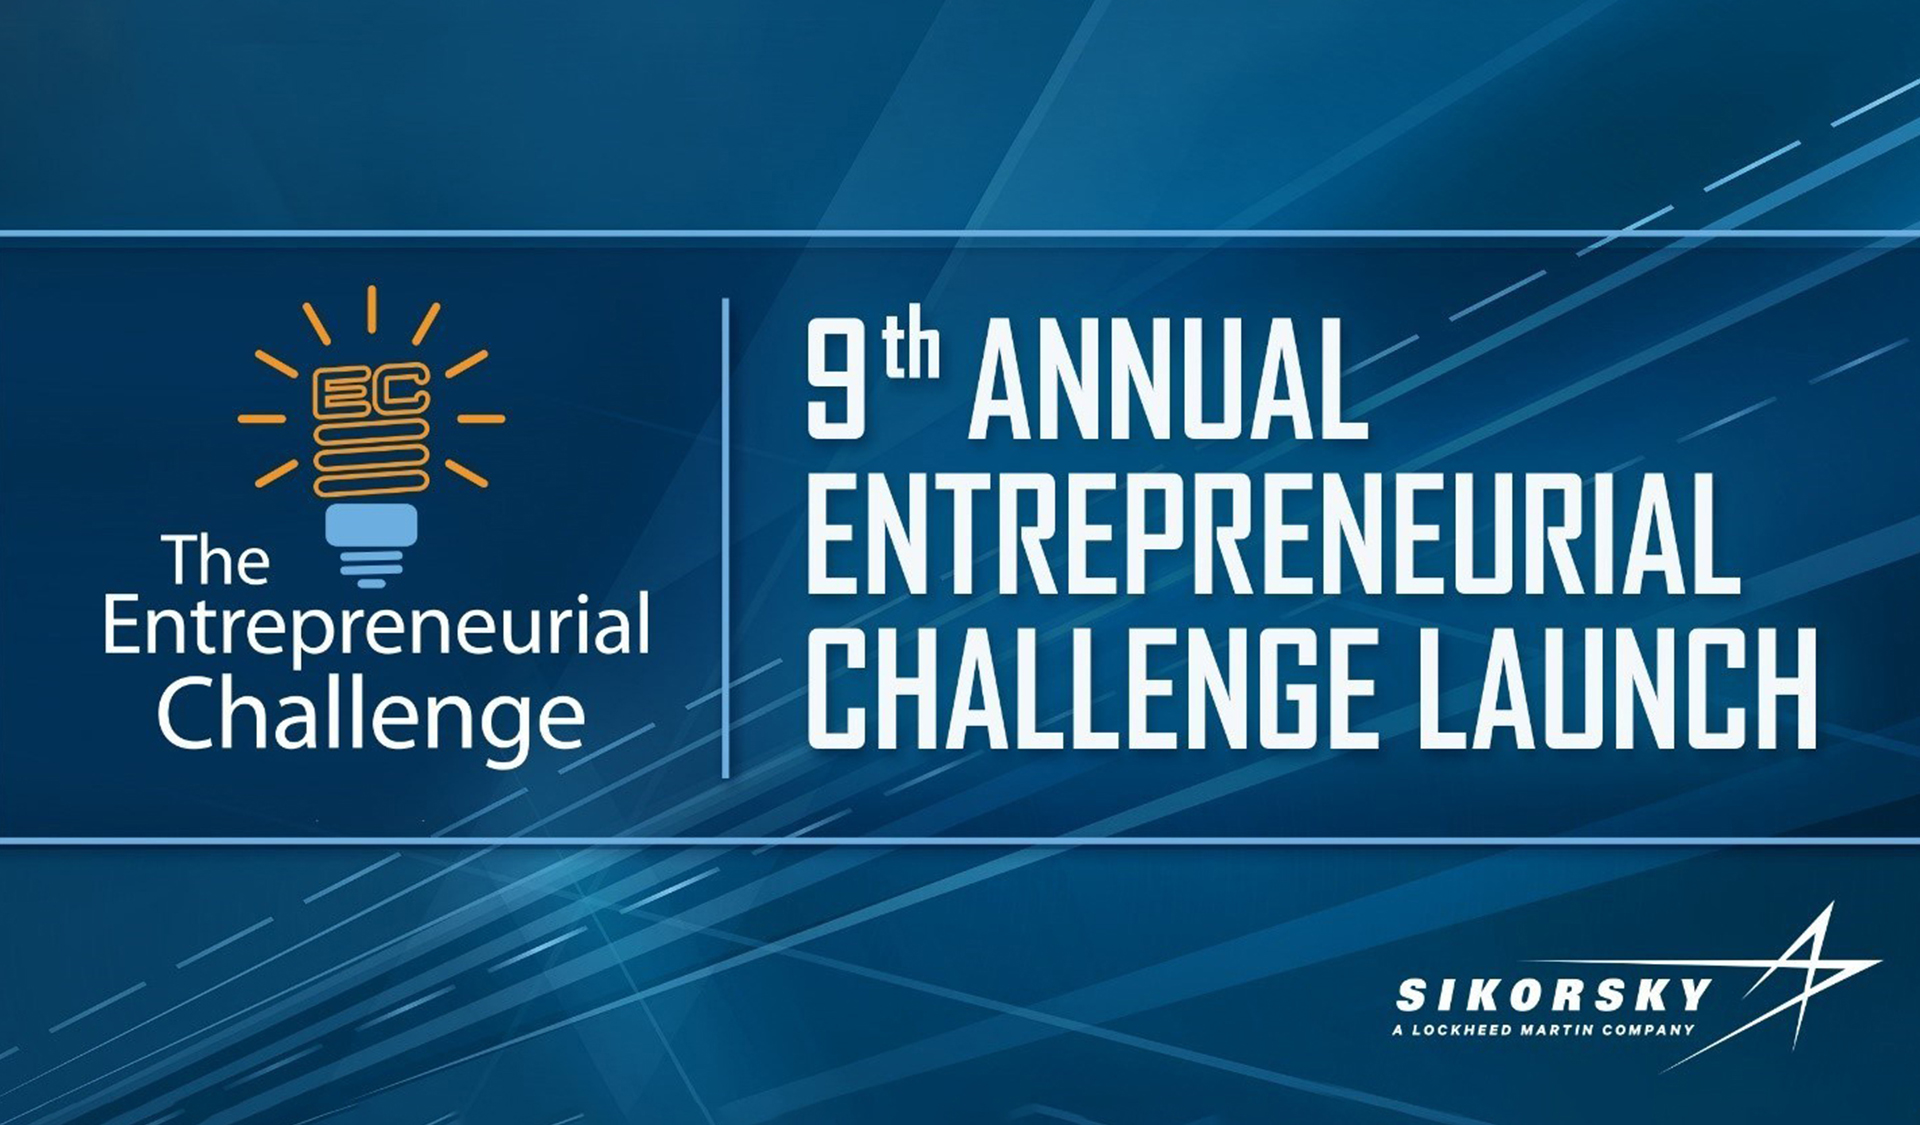 Sikorsky Invites Applications To 9th Annual Entrepreneurial Challenge